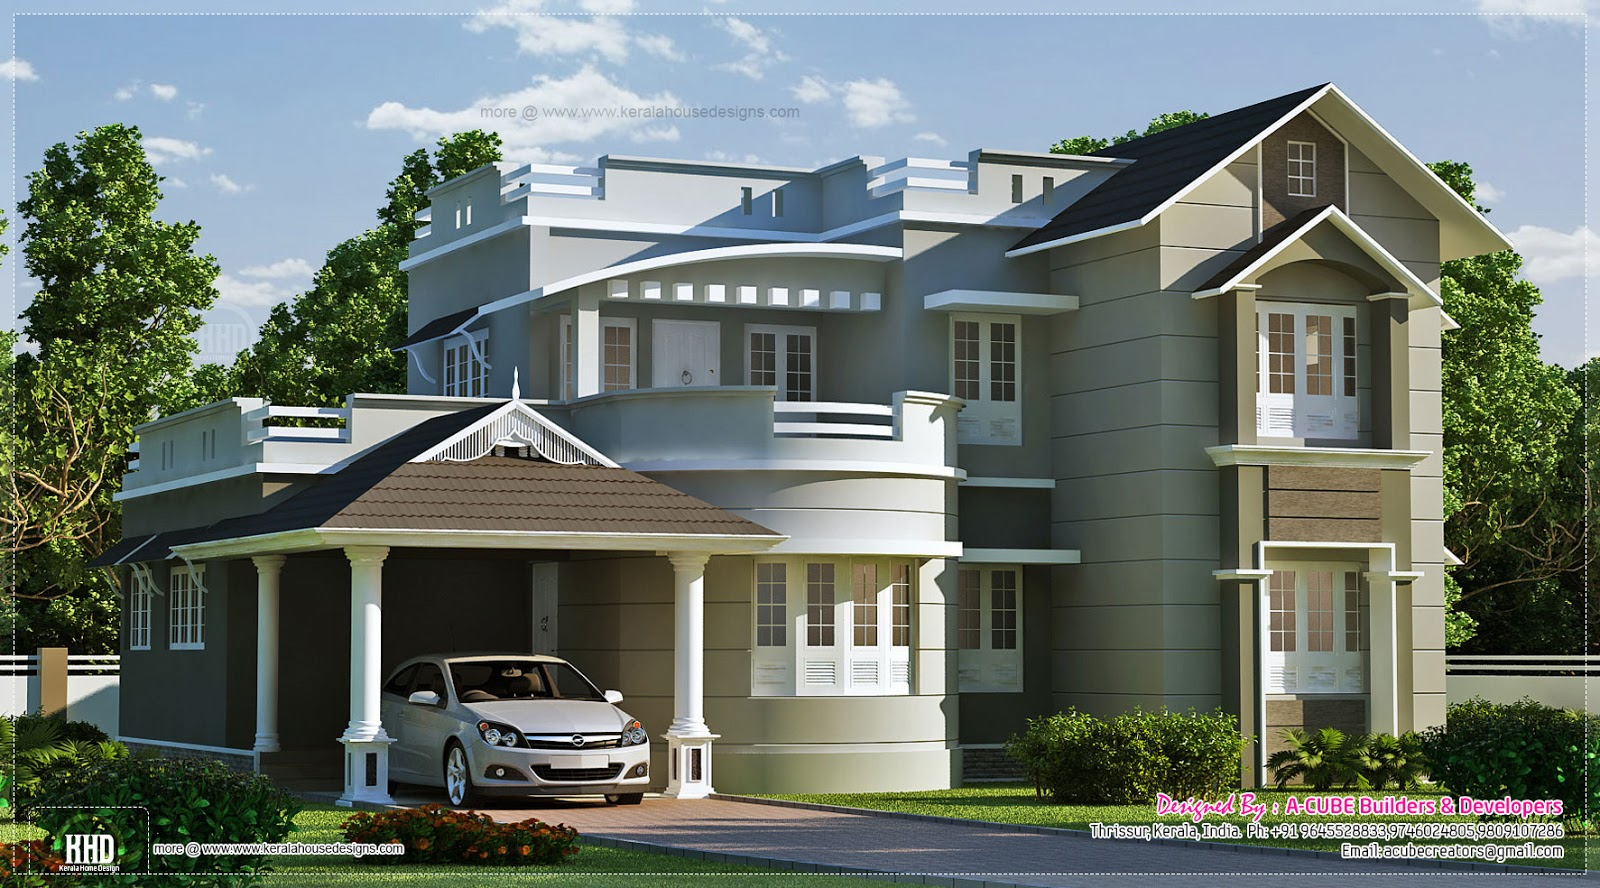 New style home exterior in 1800 kerala home for New home blueprints photos